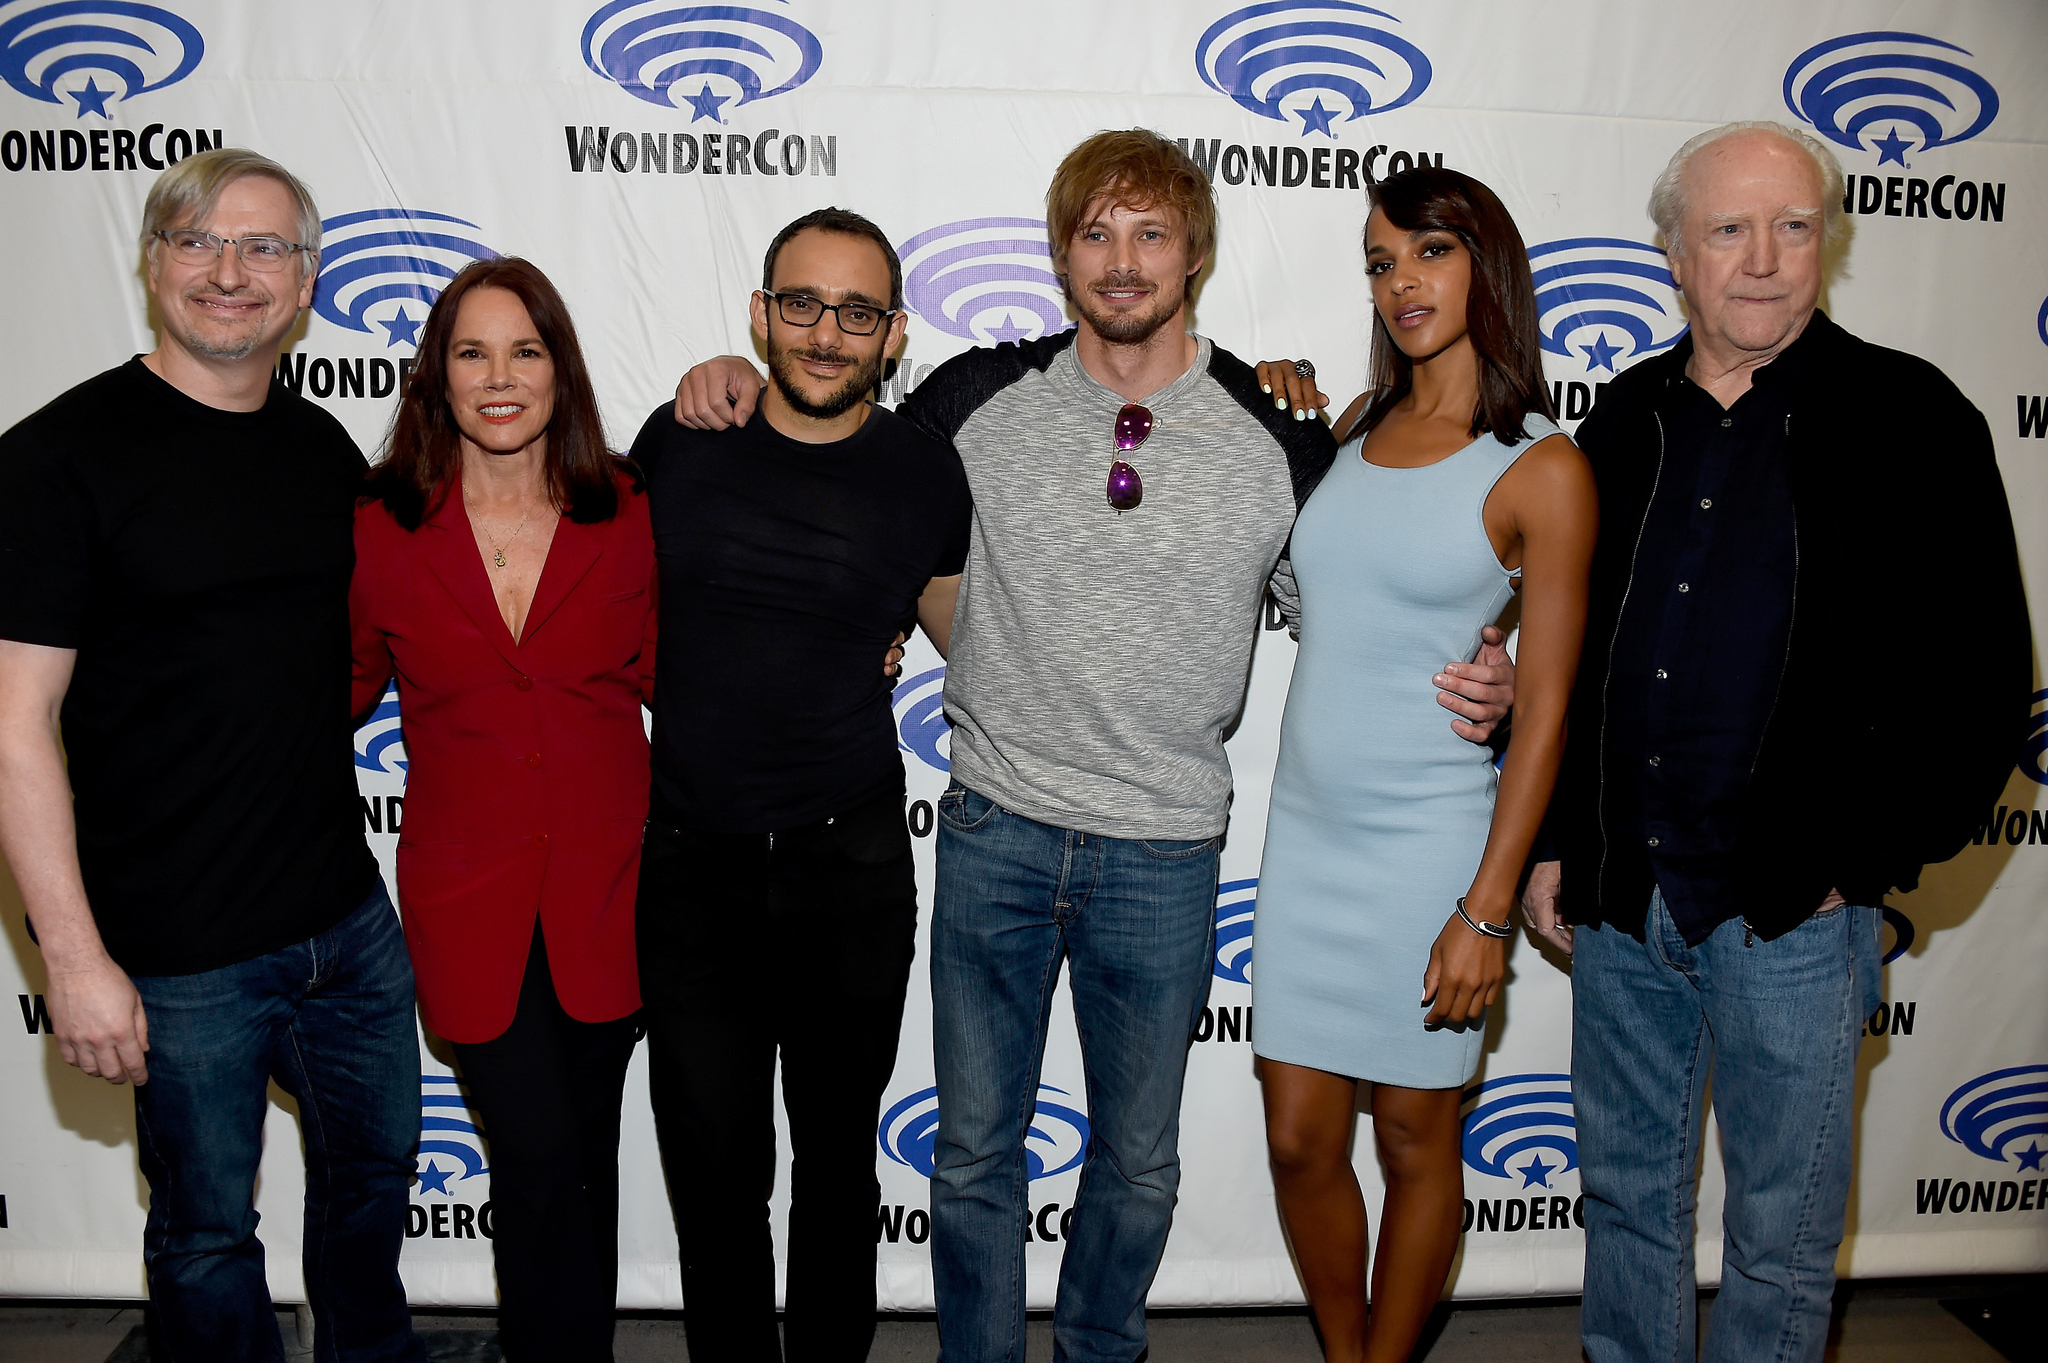 Barbara Hershey, Megalyn Echikunwoke, Scott Wilson, Glen Mazzara, Omid Abtahi, and Bradley James